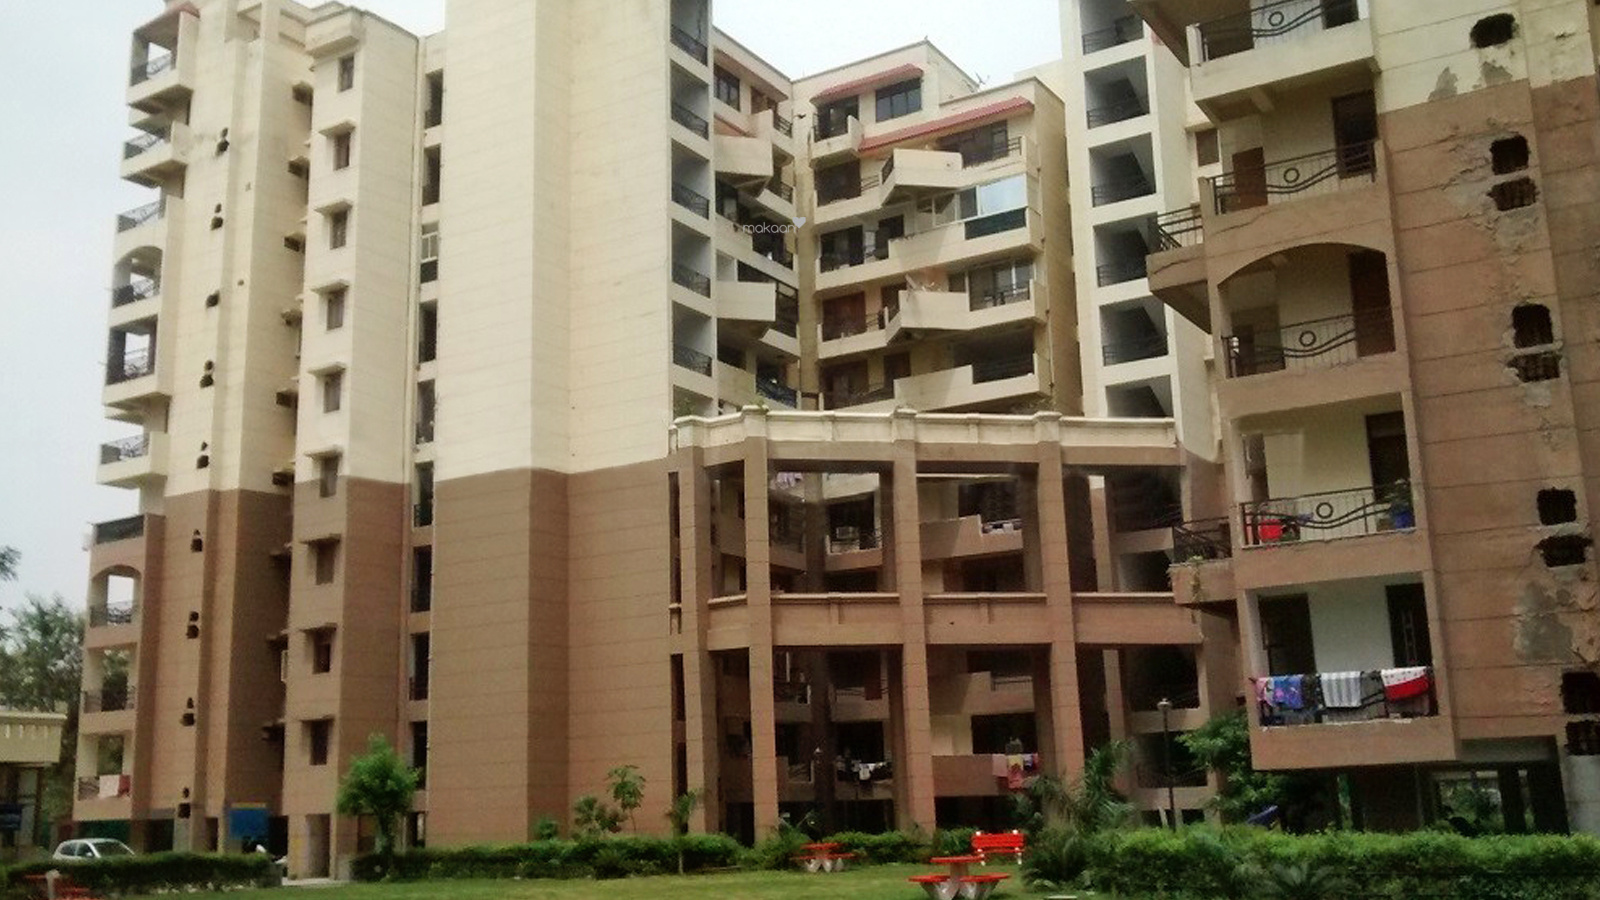 4000 sq ft 6BHK 6BHK+5T (4,000 sq ft) + Store Room Property By sinha real estate In The Shabad, Sector 13 Dwarka